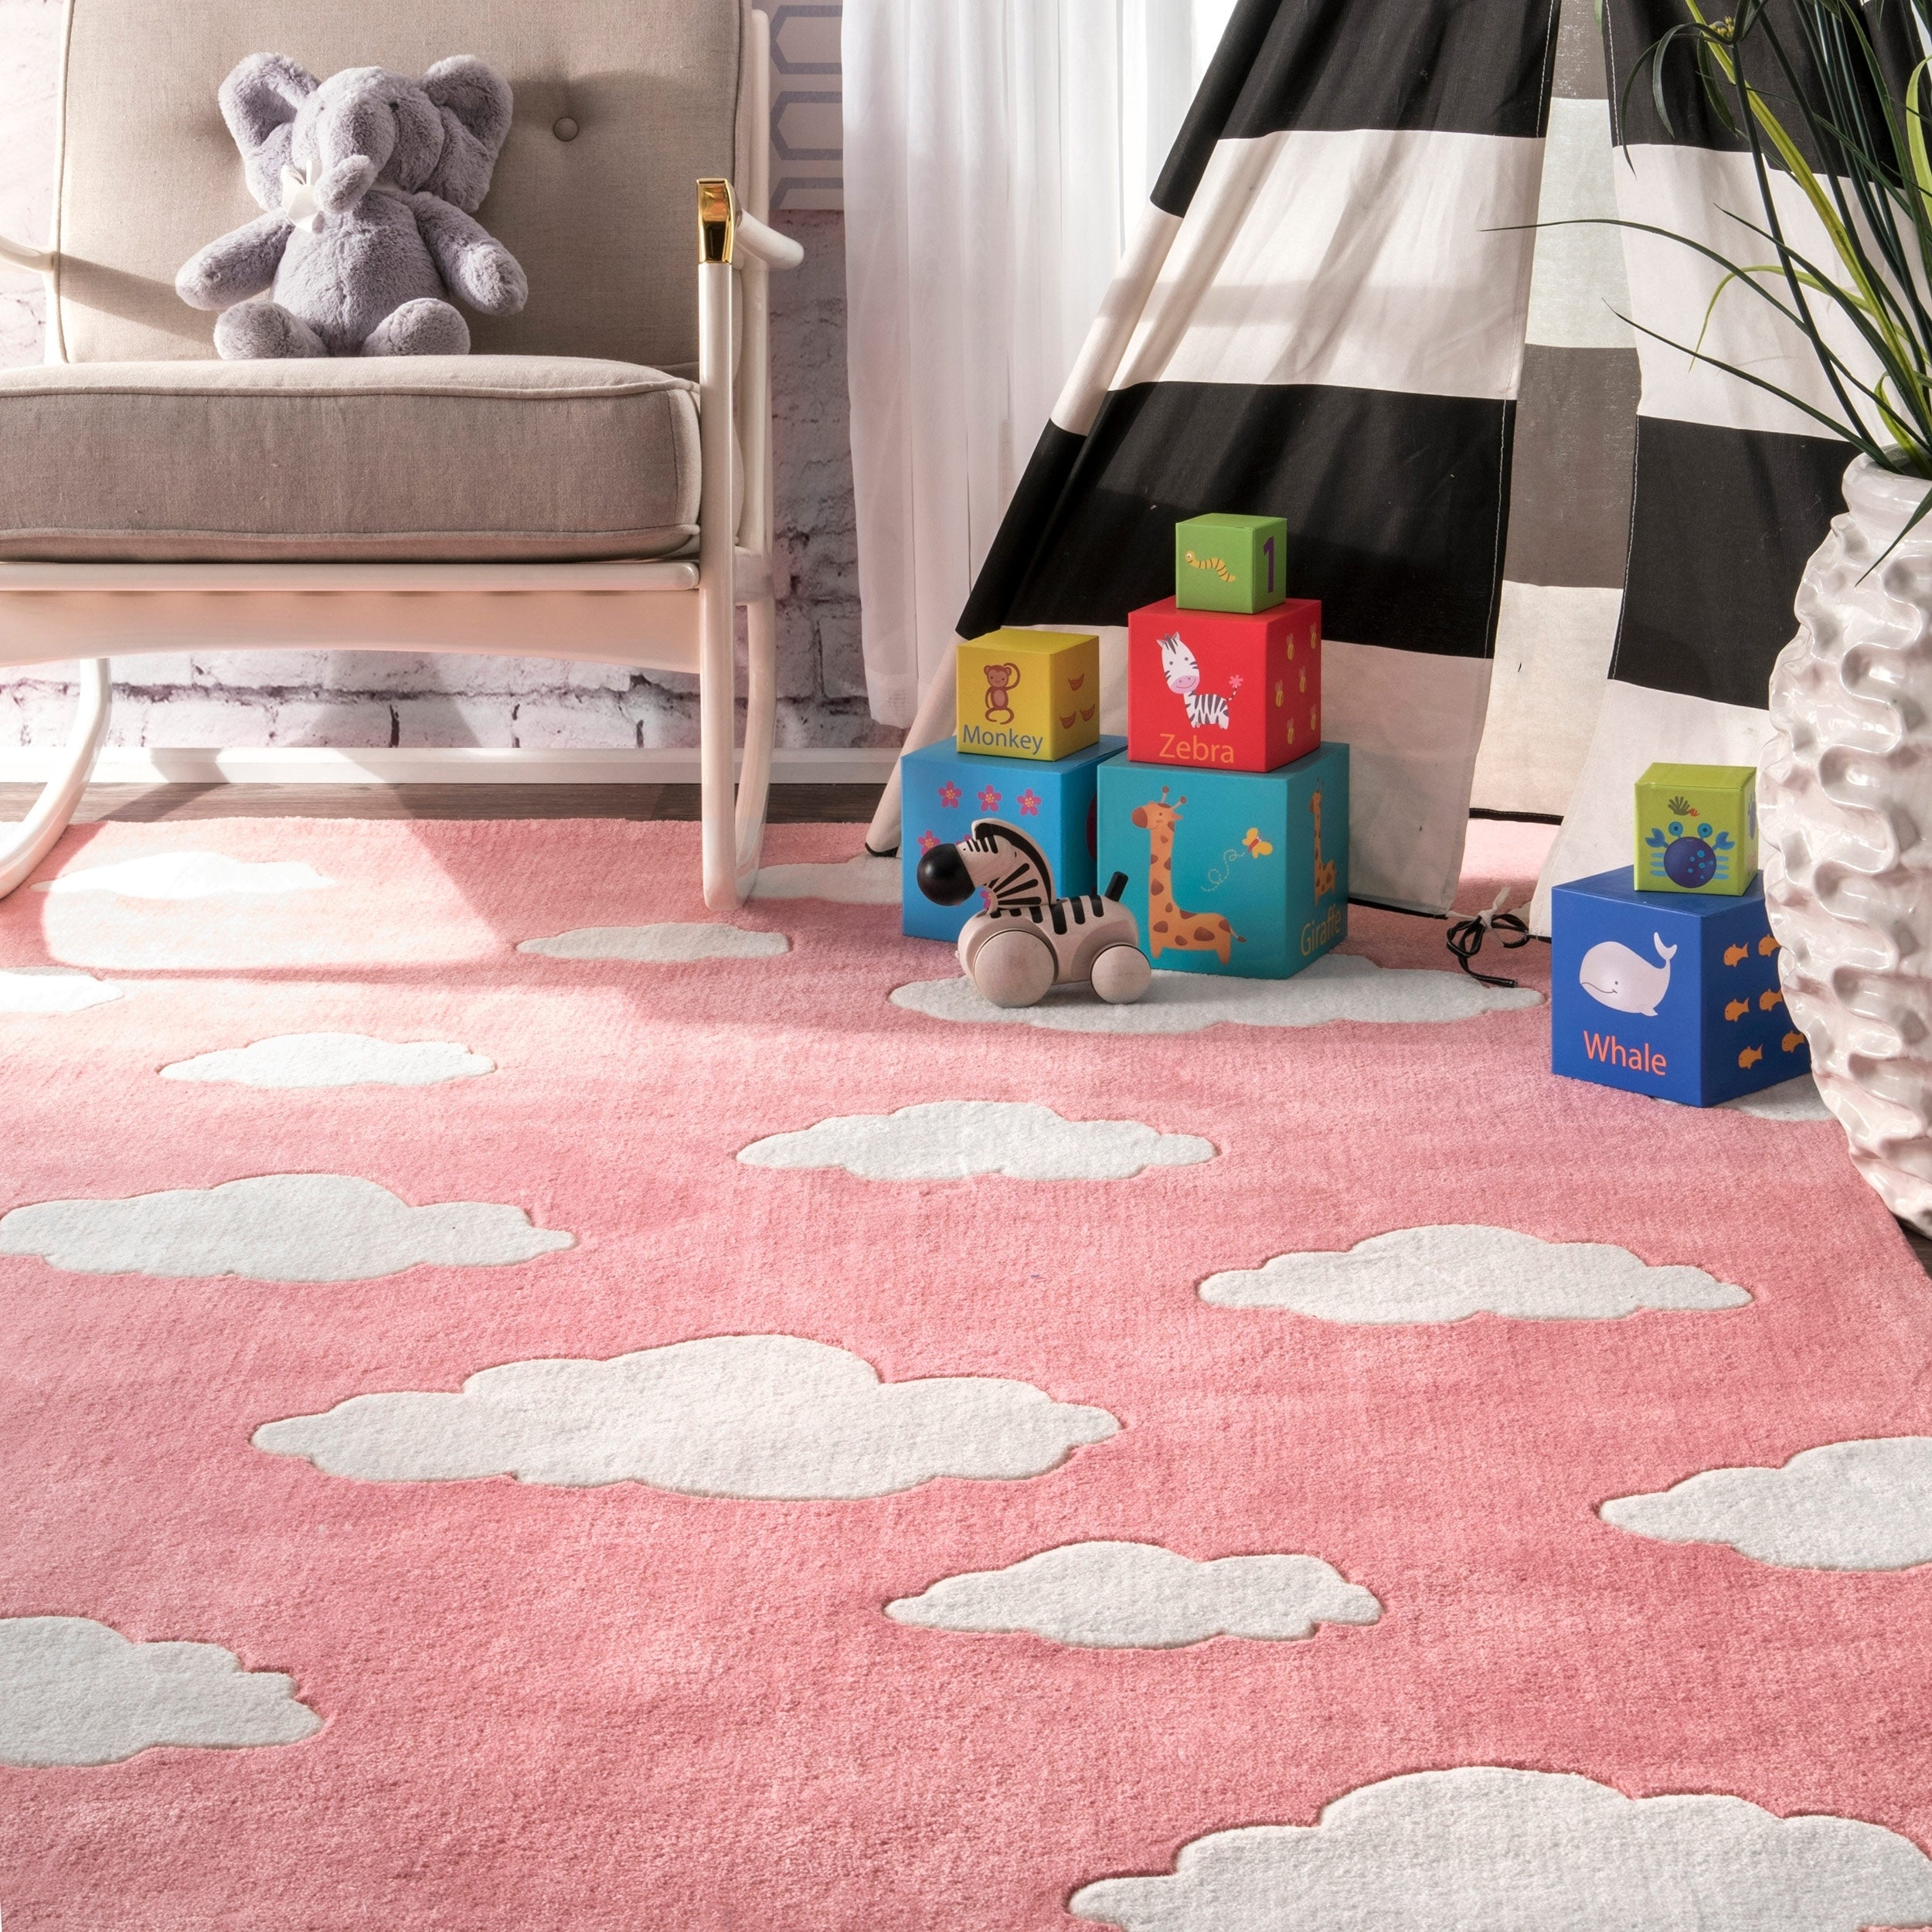 shaped fun throw butterfly carpet of star mats kids room round pink childrens playroom fluffy boys for orange full rug animal baby size rugs shop nursery area